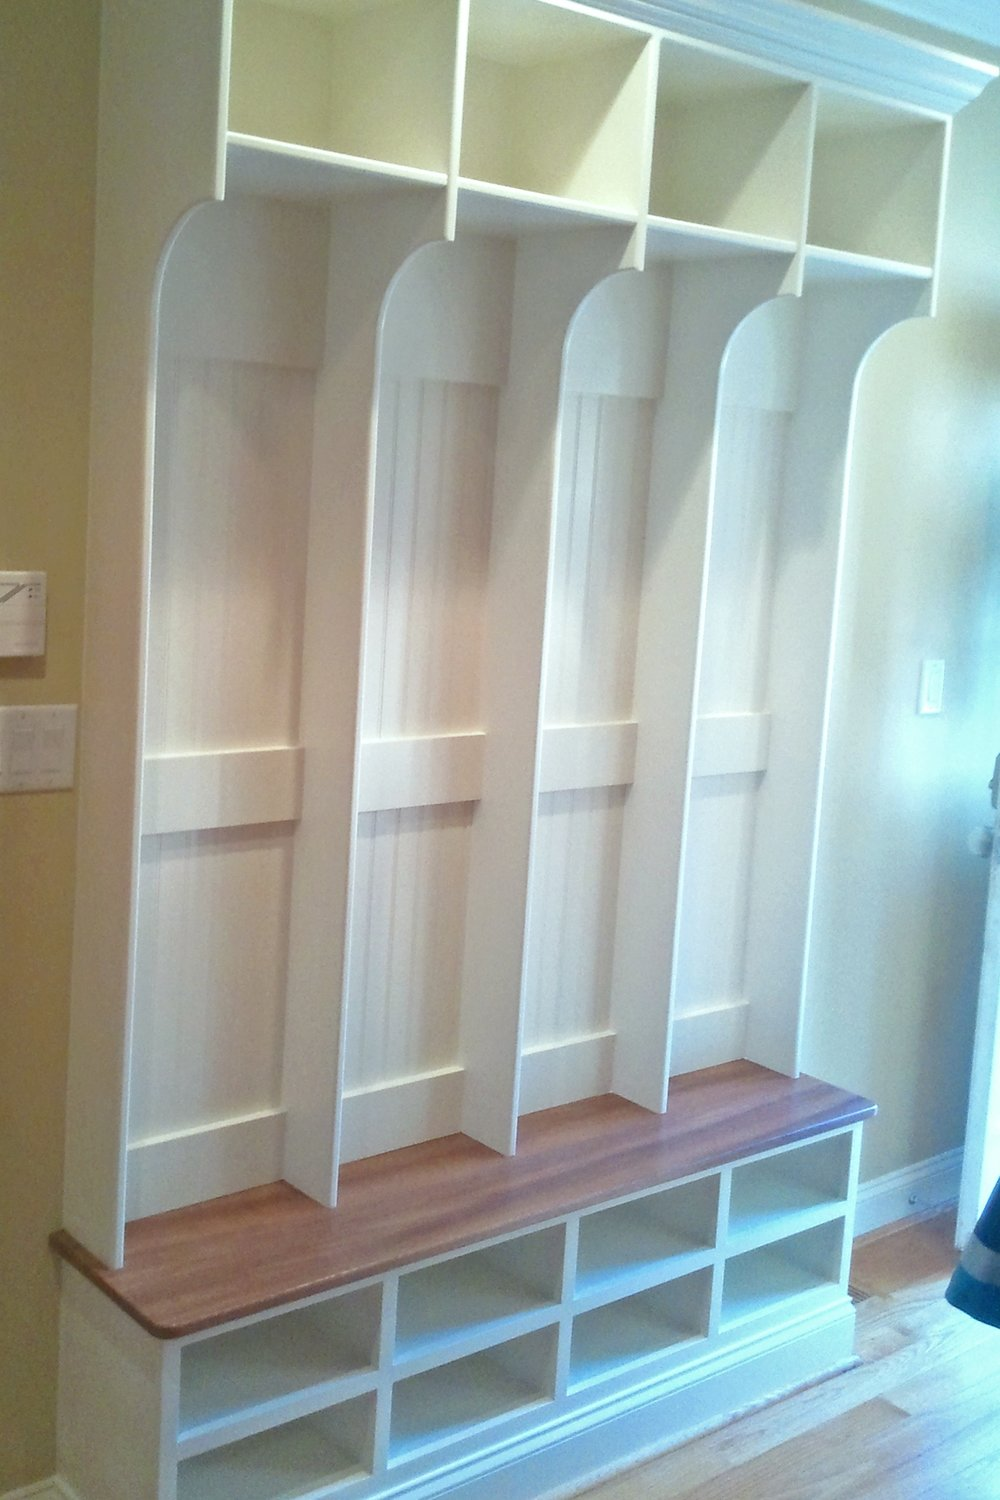 Mudroom - Drop Zone 7.jpg